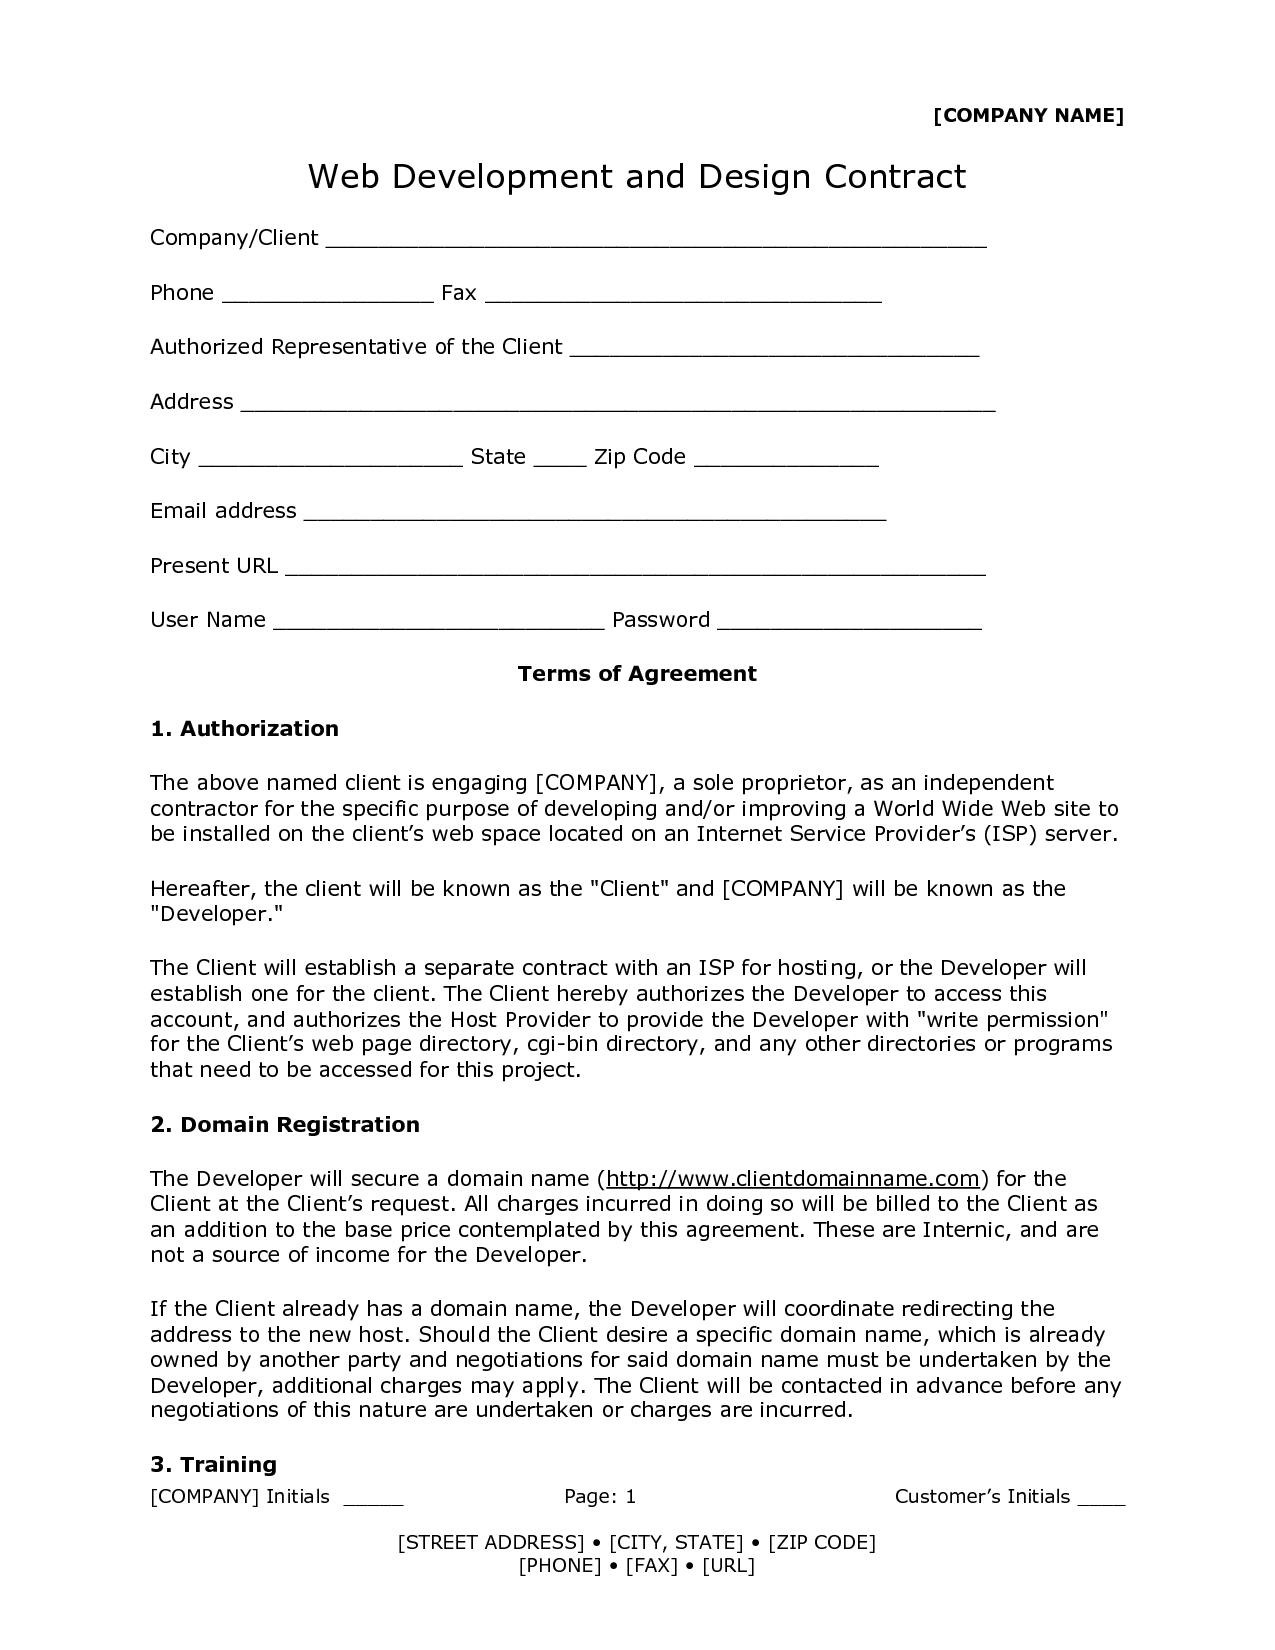 Interior design contract template pin by dora morgan on - Interior design letter of agreement ...